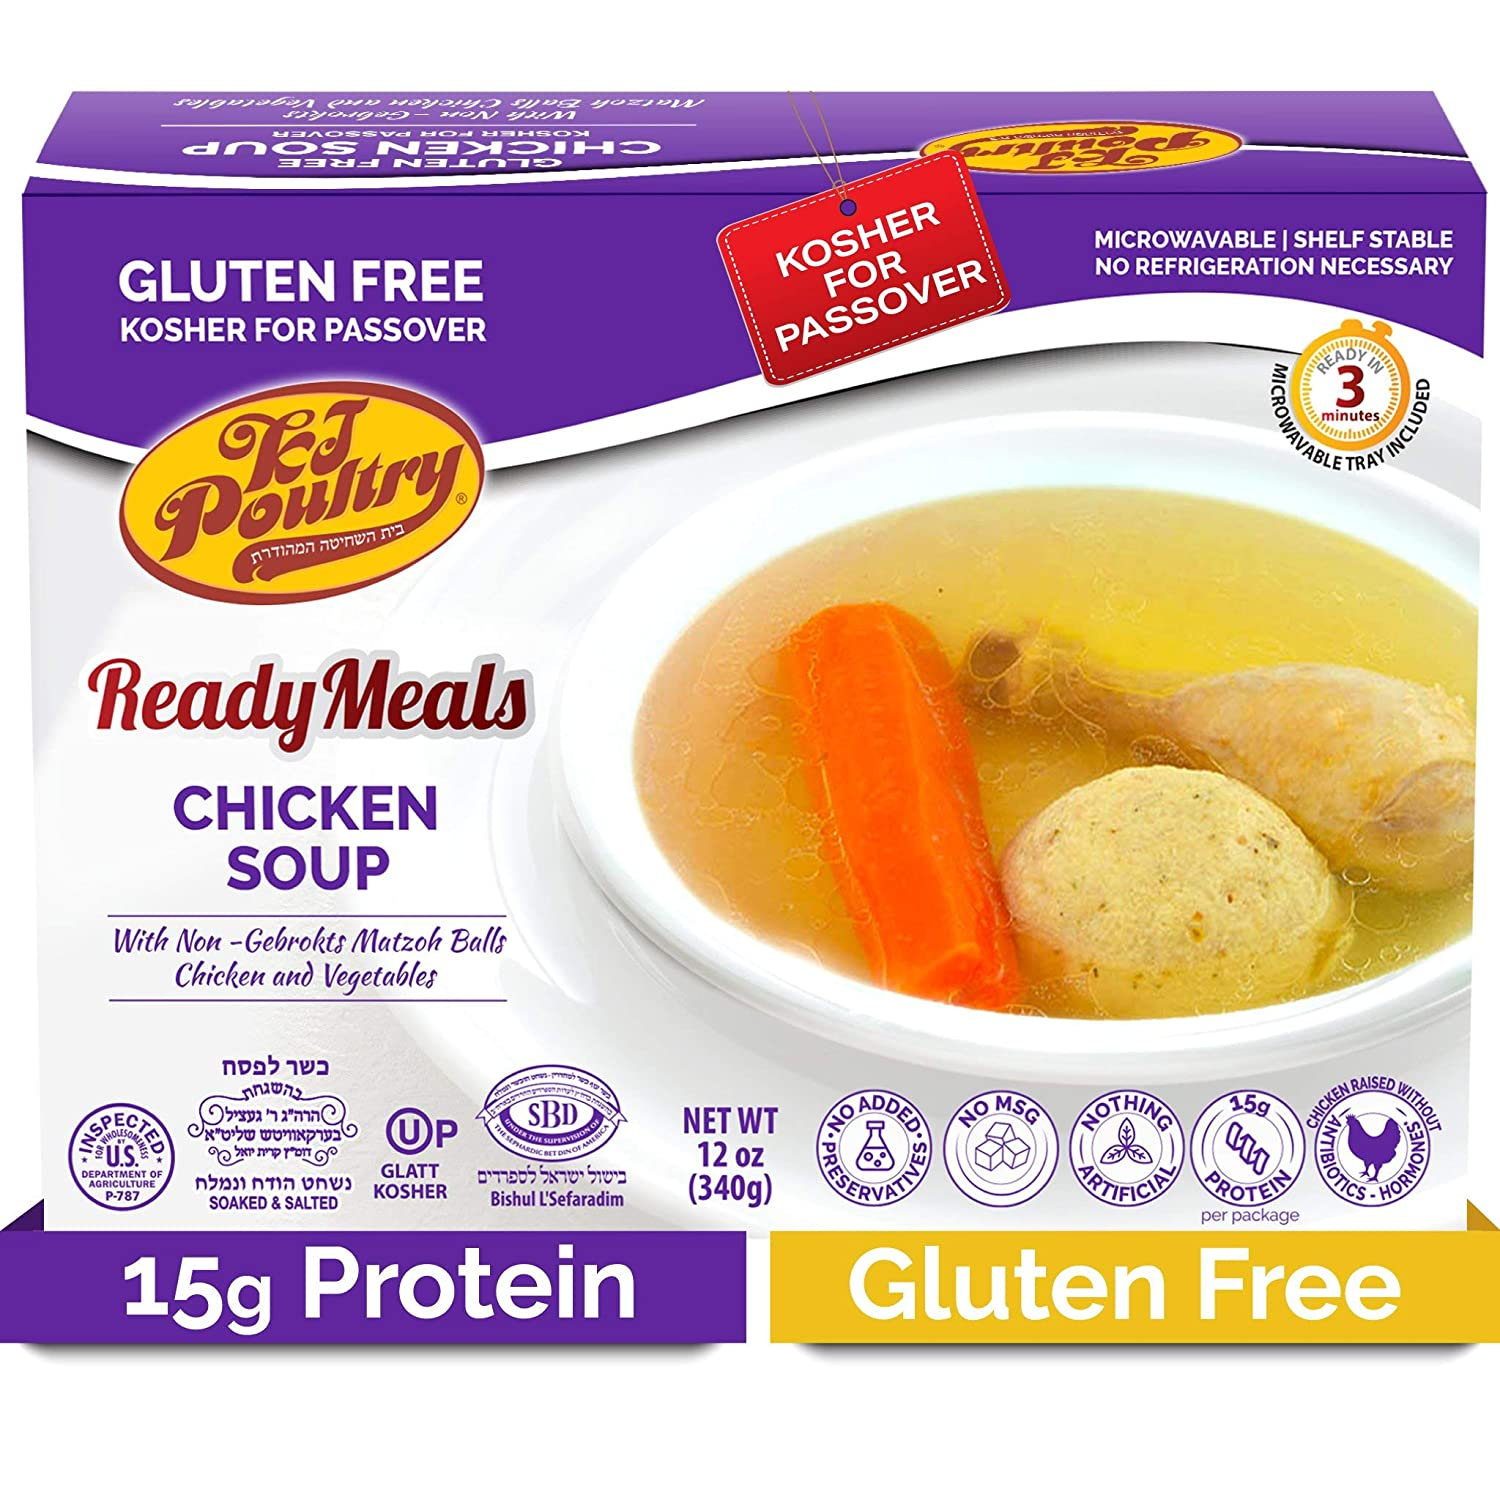 Kosher For Passover Food Matzo Ball Chicken Soup - MRE Meat Meals Ready to Eat - Gluten Free (1 Pack) - Prepared Entree Fully Cooked, Shelf Stable Microwave Dinner